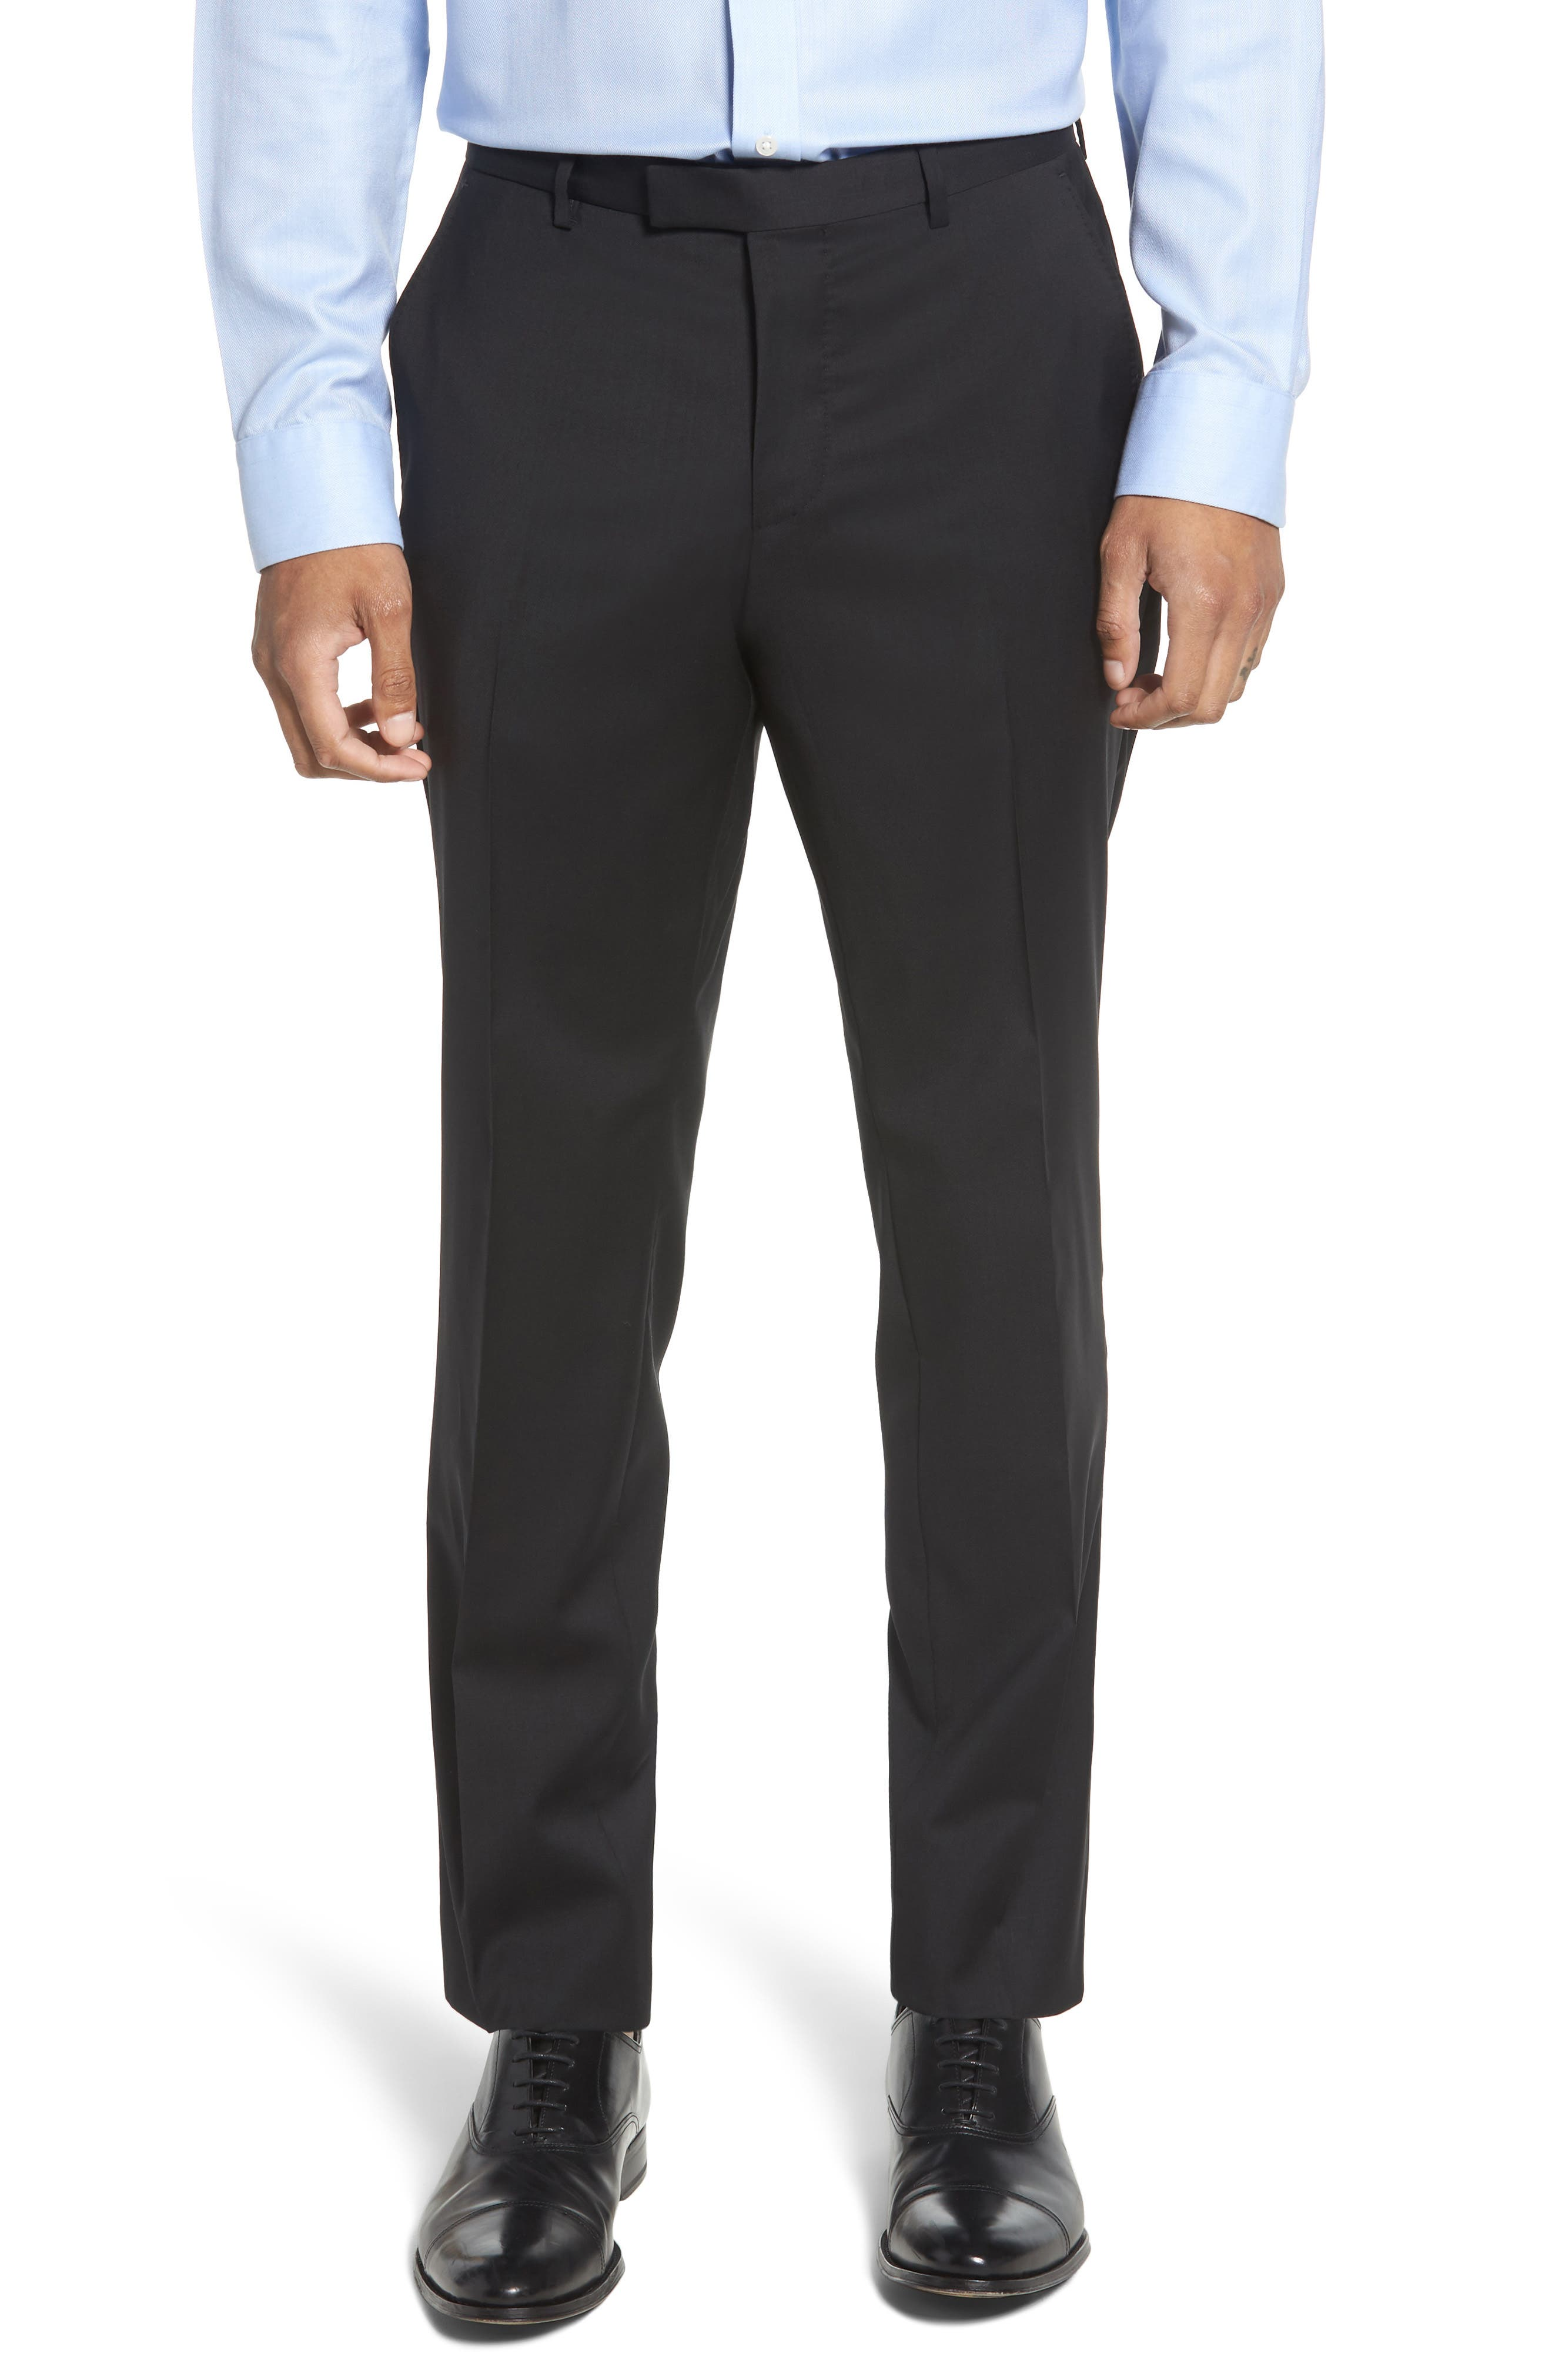 Leenon Flat Front Regular Fit Solid Wool Trousers,                             Main thumbnail 1, color,                             BLACK